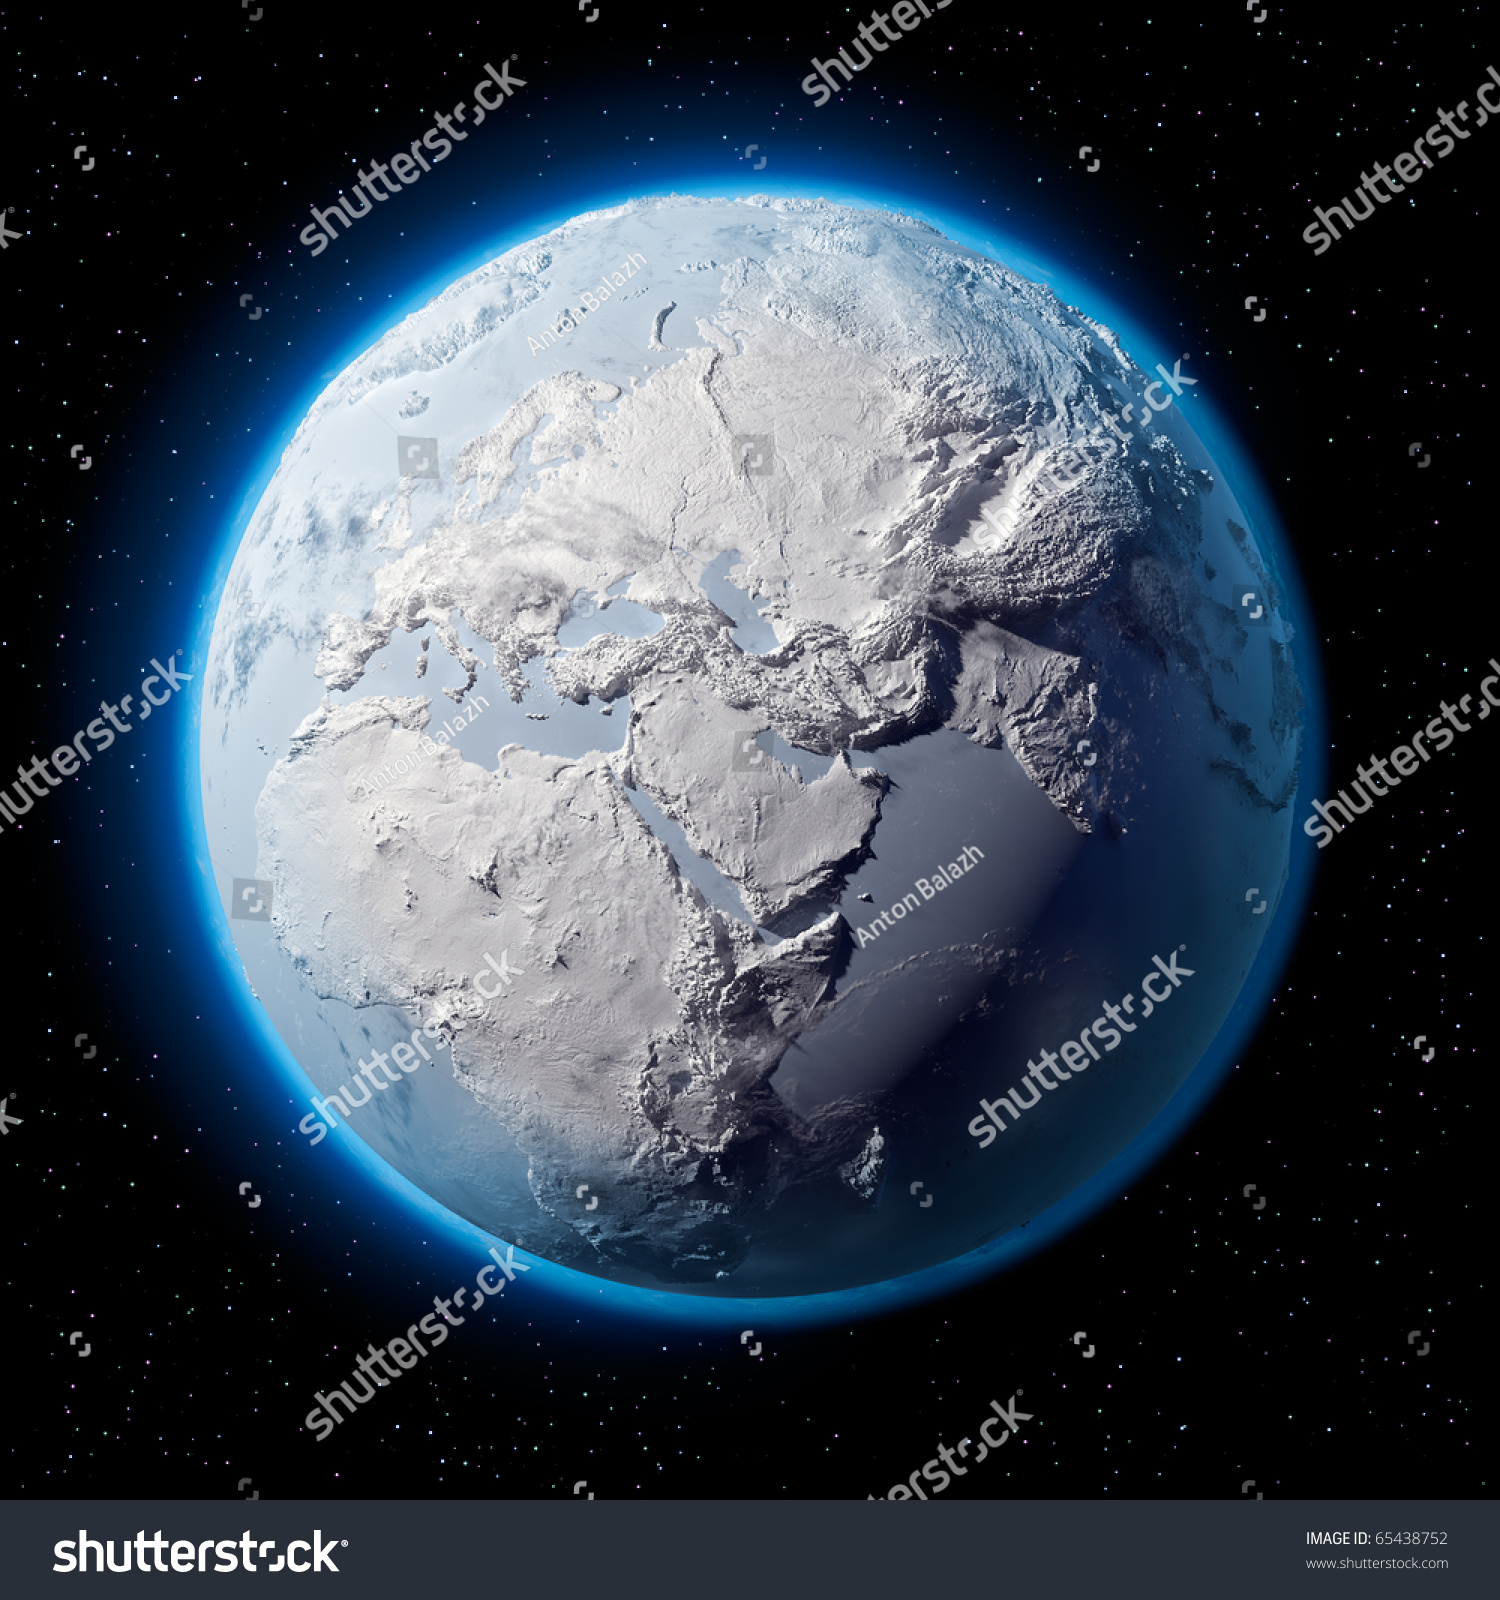 http://image.shutterstock.com/z/stock-photo-winter-planet-earth-covered-in-snow-and-ice-planet-with-a-real-detailed-terrain-soft-shadows-and-65438752.jpg